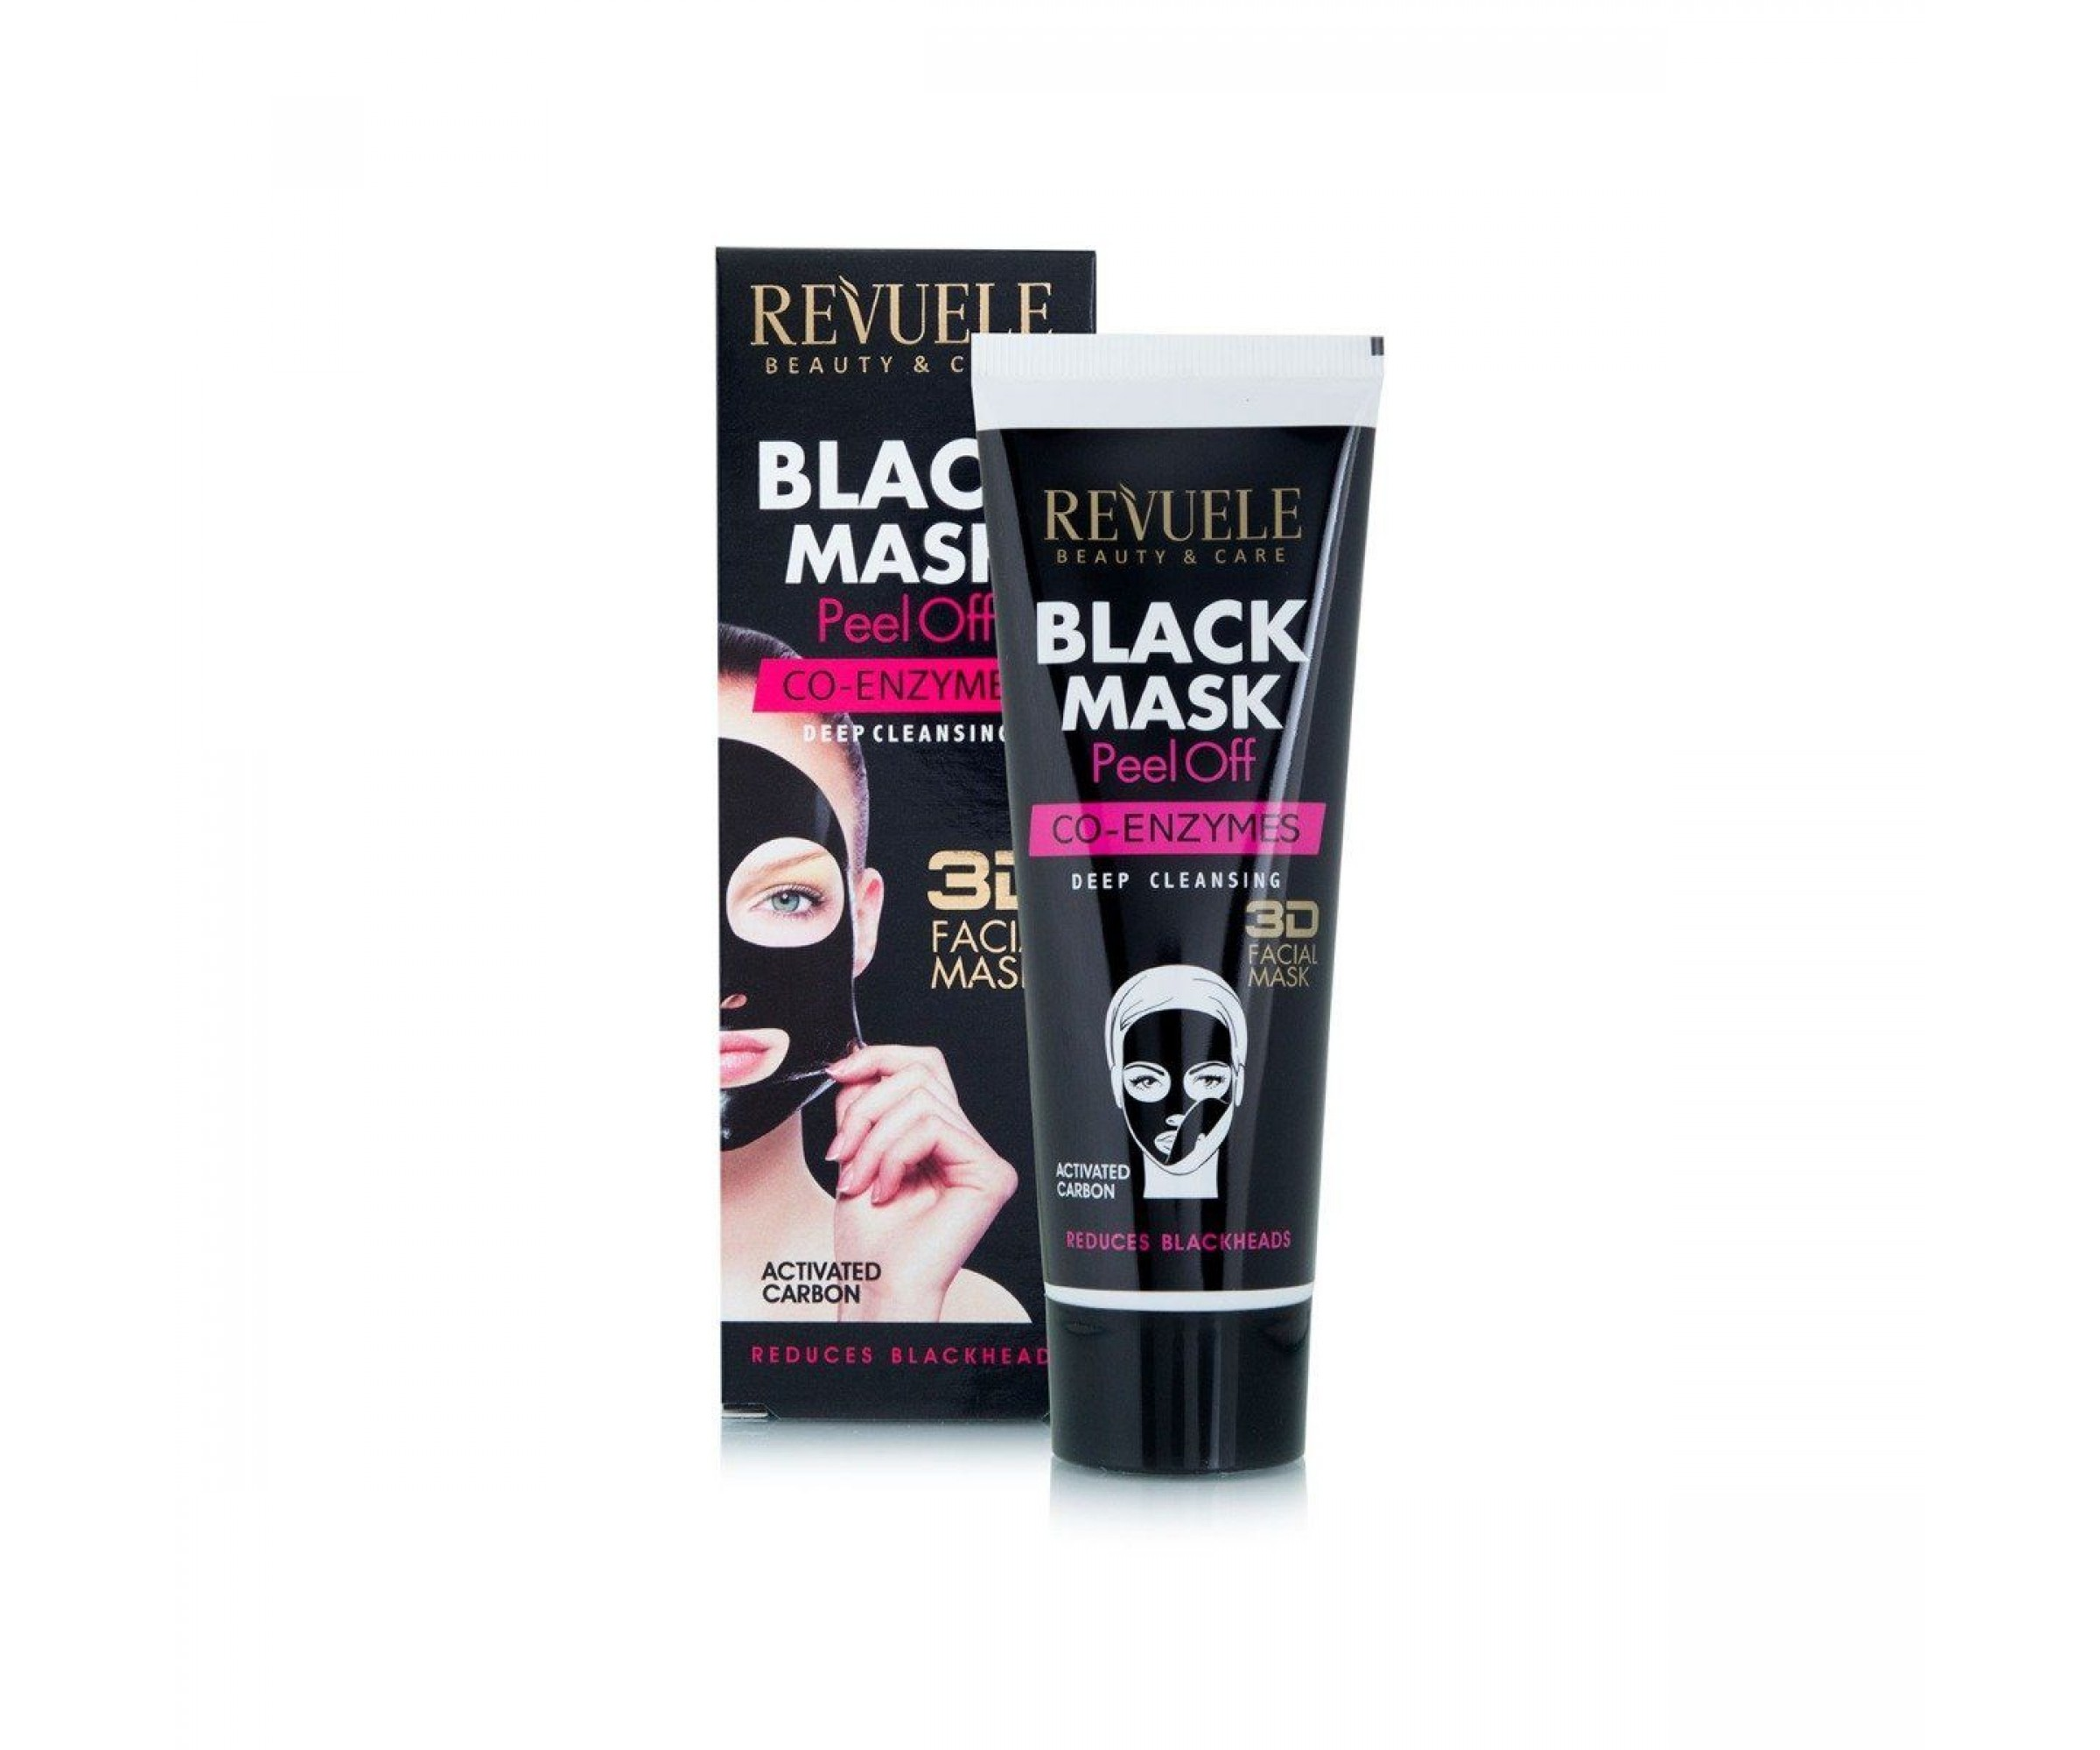 Revuele Deep Cleansing 3D Black Peel Off Face Mask With Co-Enzymes Reduces Blackheads 80 ml